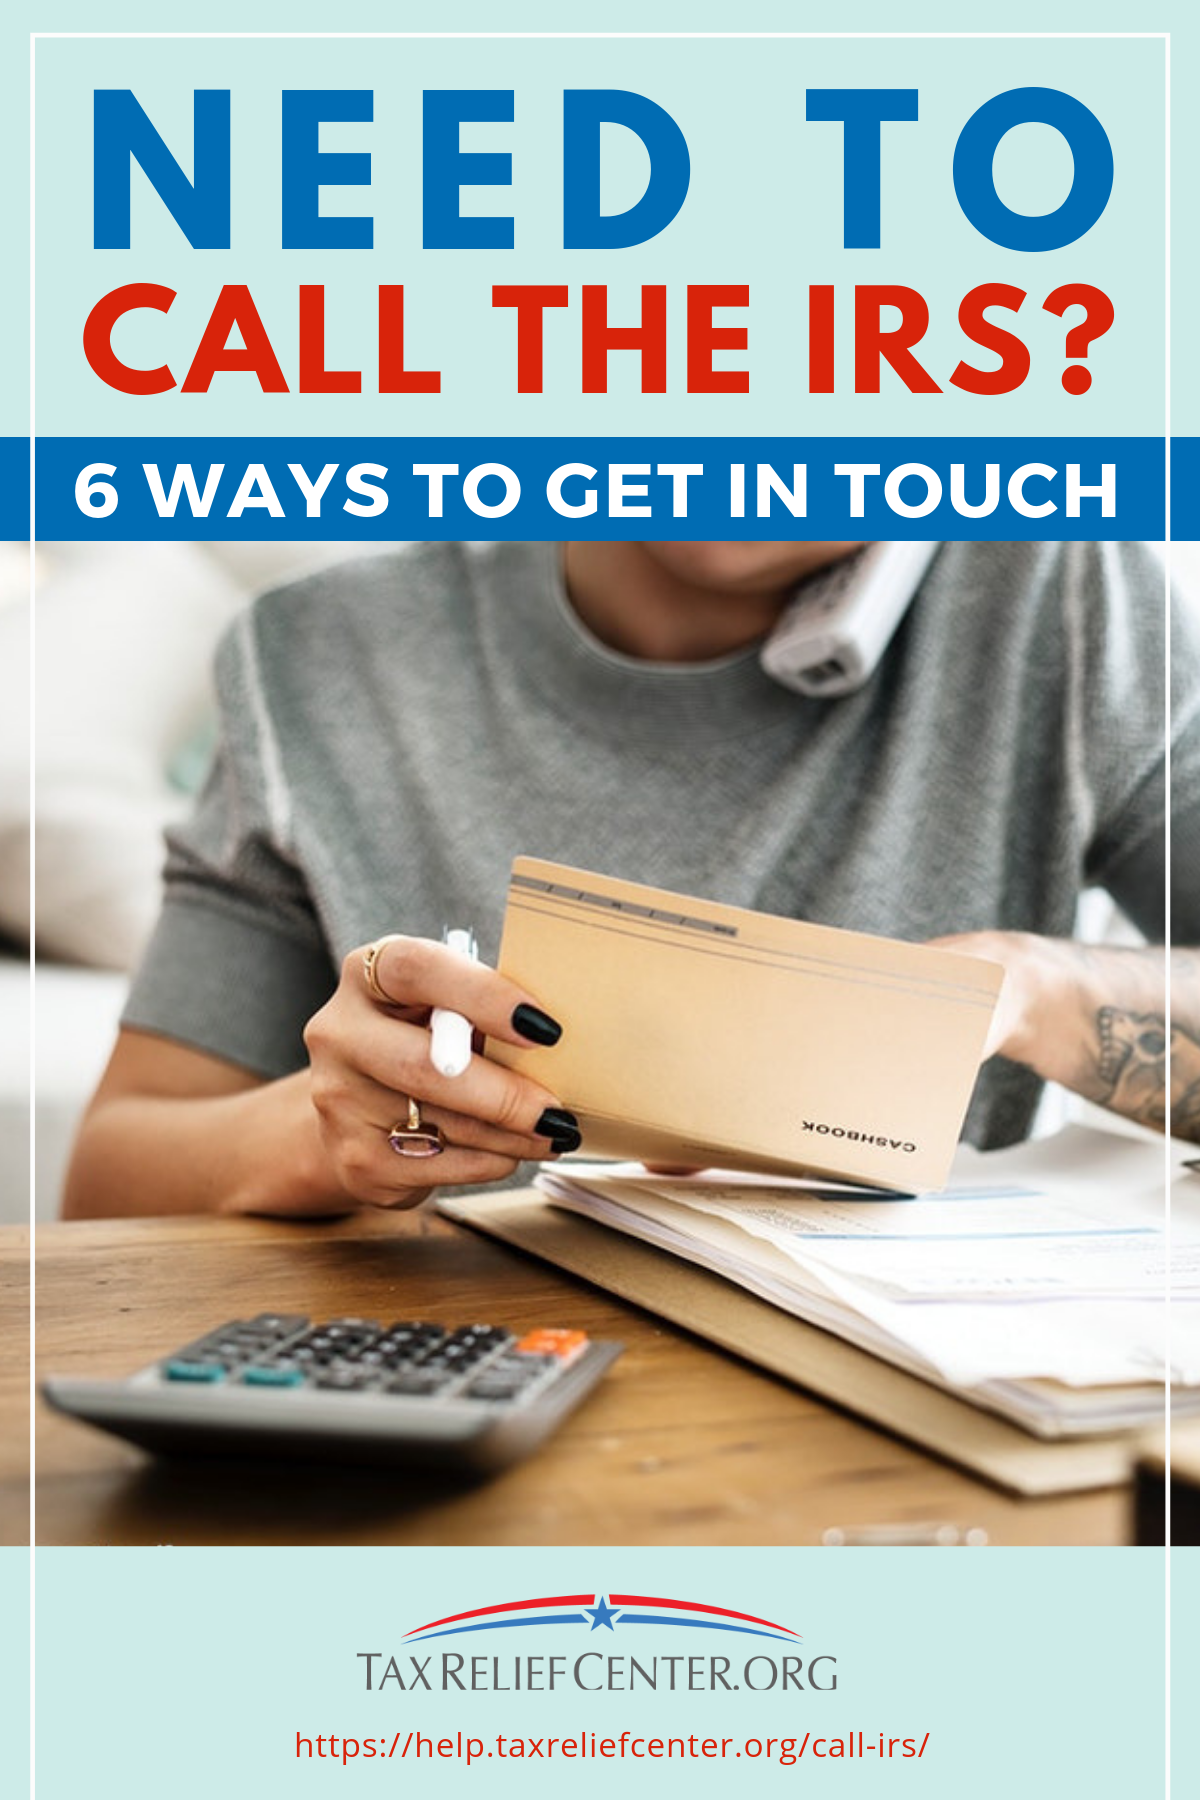 Need To Call The IRS? | 6 Ways To Get In Touch https://help.taxreliefcenter.org/call-irs/